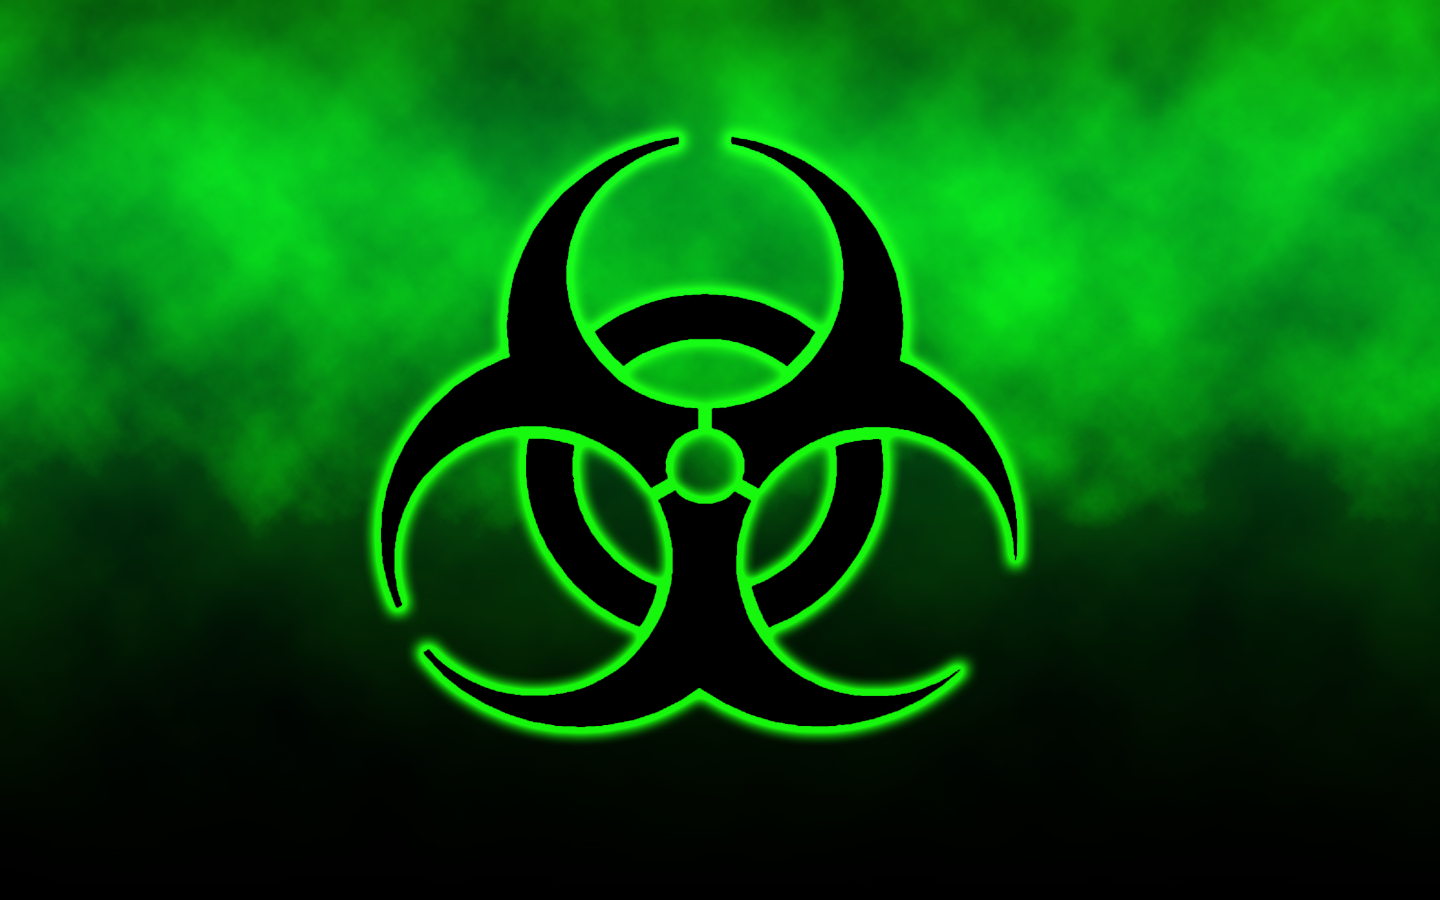 Back   Pictures for biohazard symbol wallpaper hd 1440x900